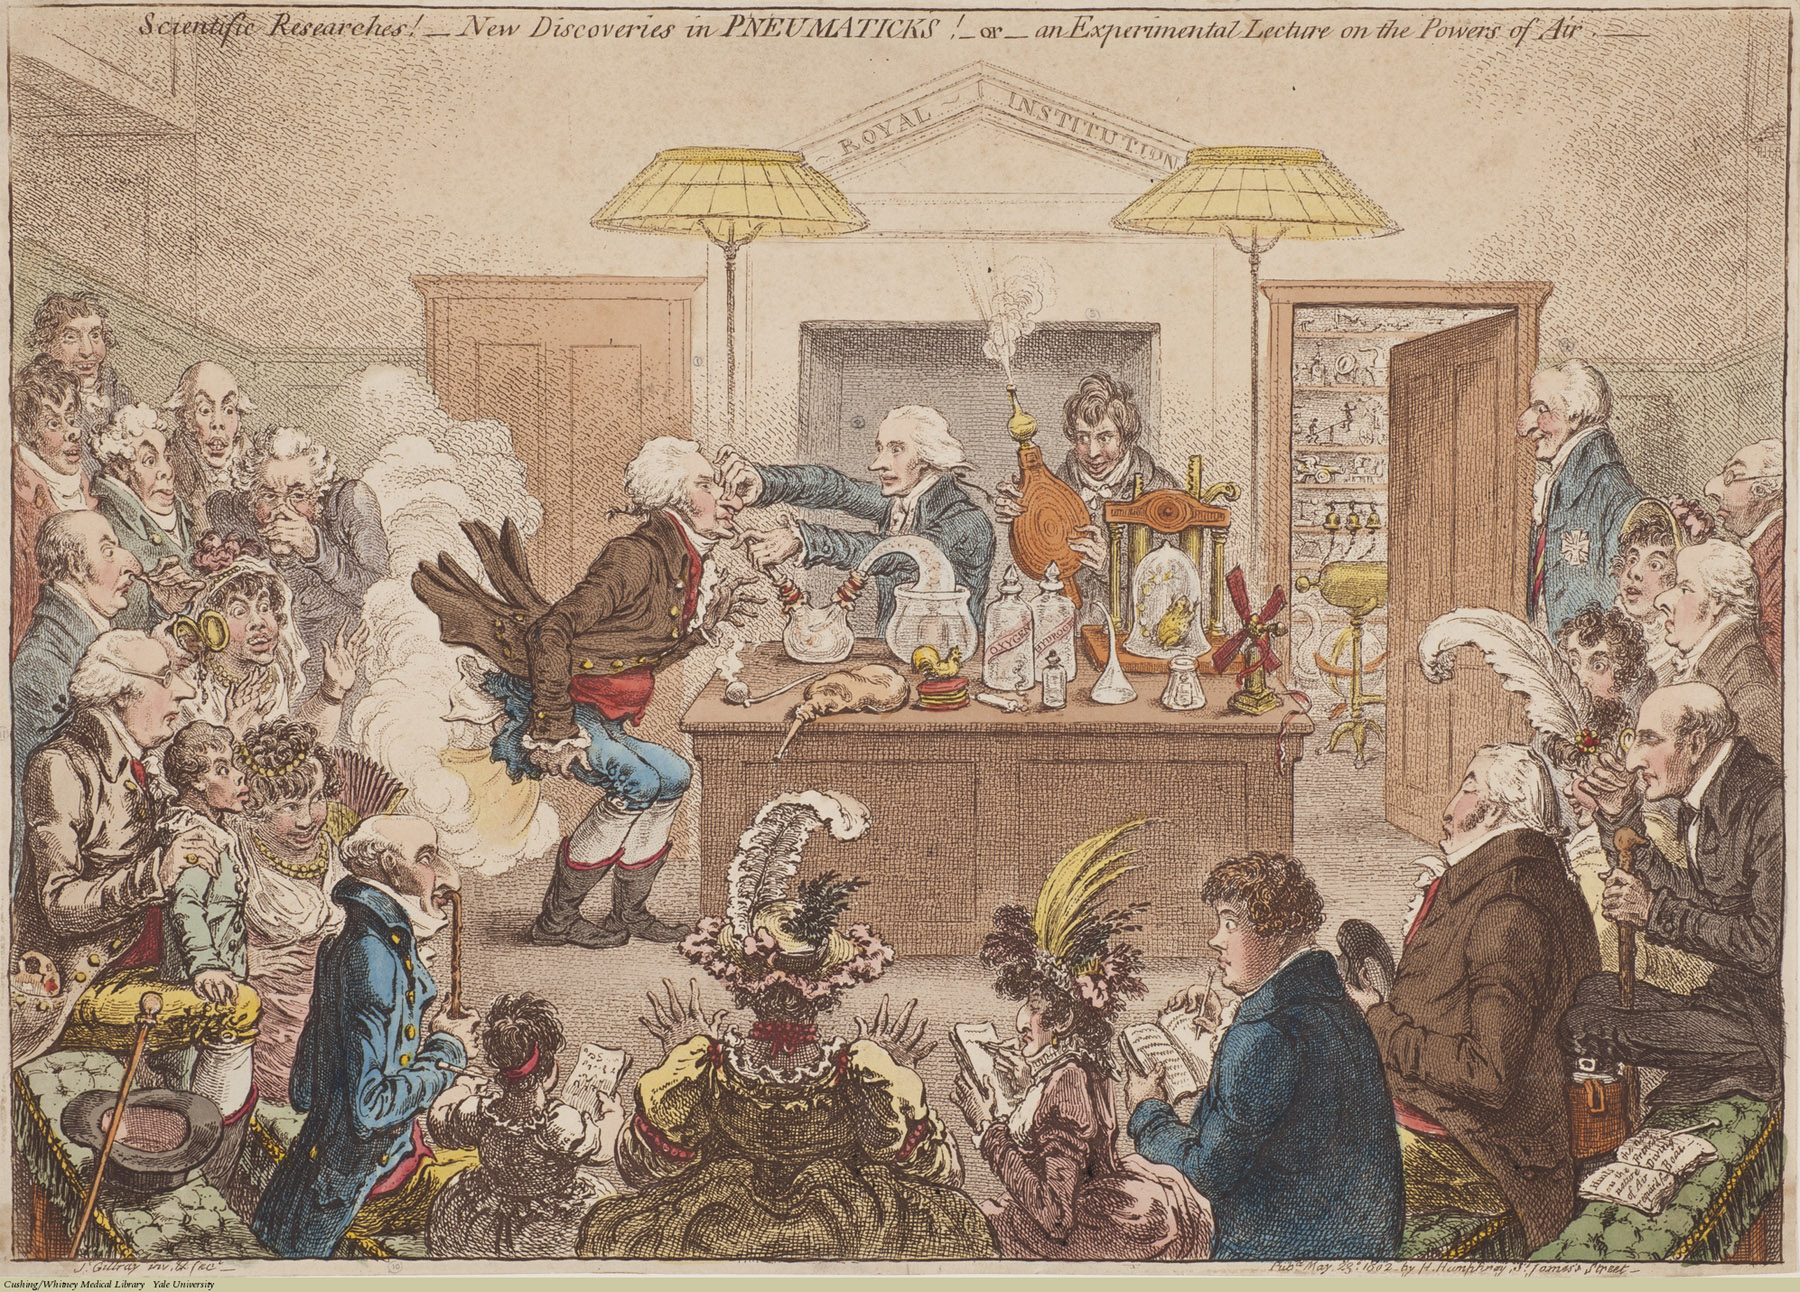 New Discoveries in Pneumaticks!: or an Experimental Lecture on the Powers of Air, James Gillray, Etching coloured, 1802. Subject: New Discoveries, Equipment, Supplies, Teaching.